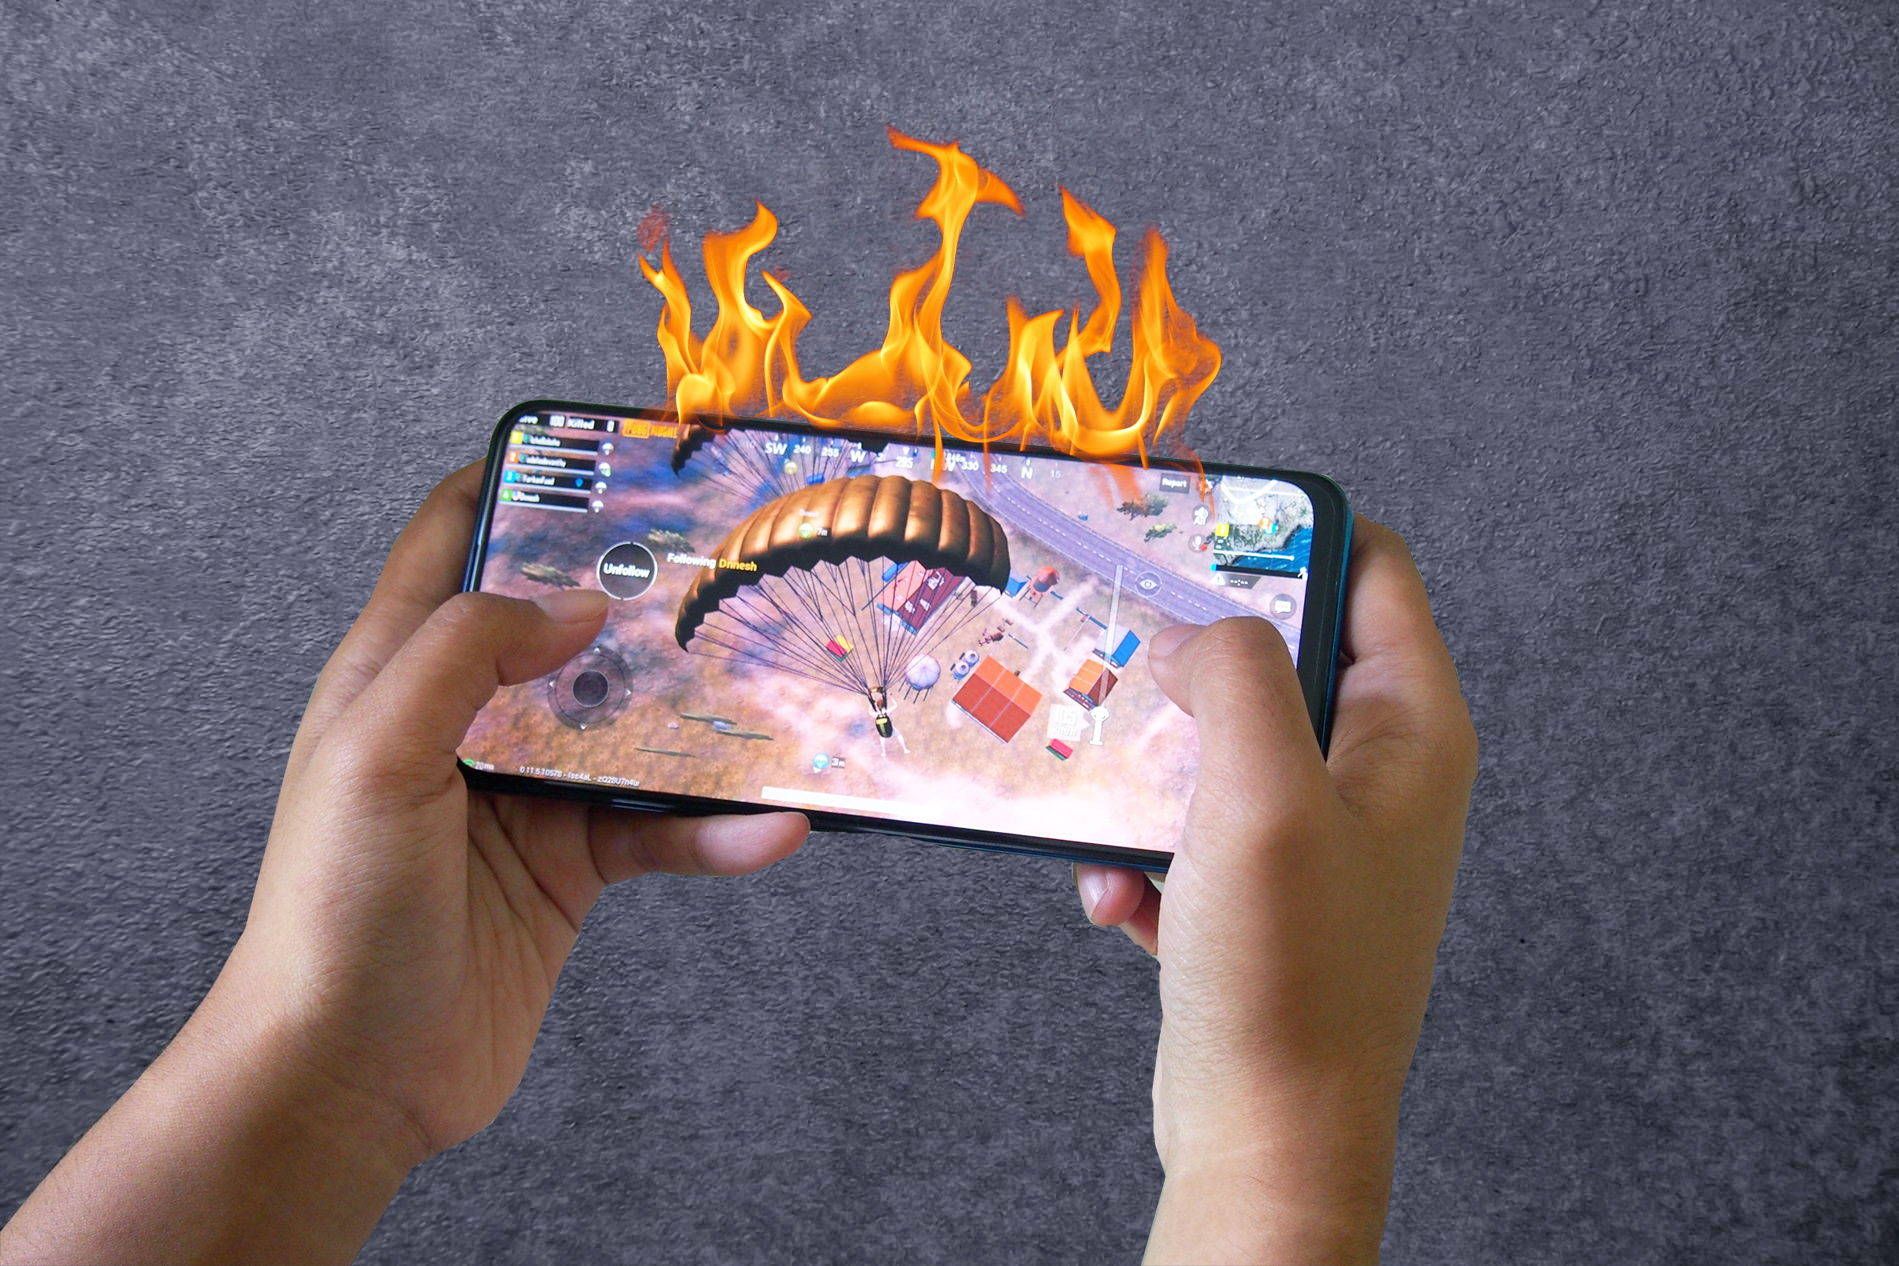 phone-overheat-game